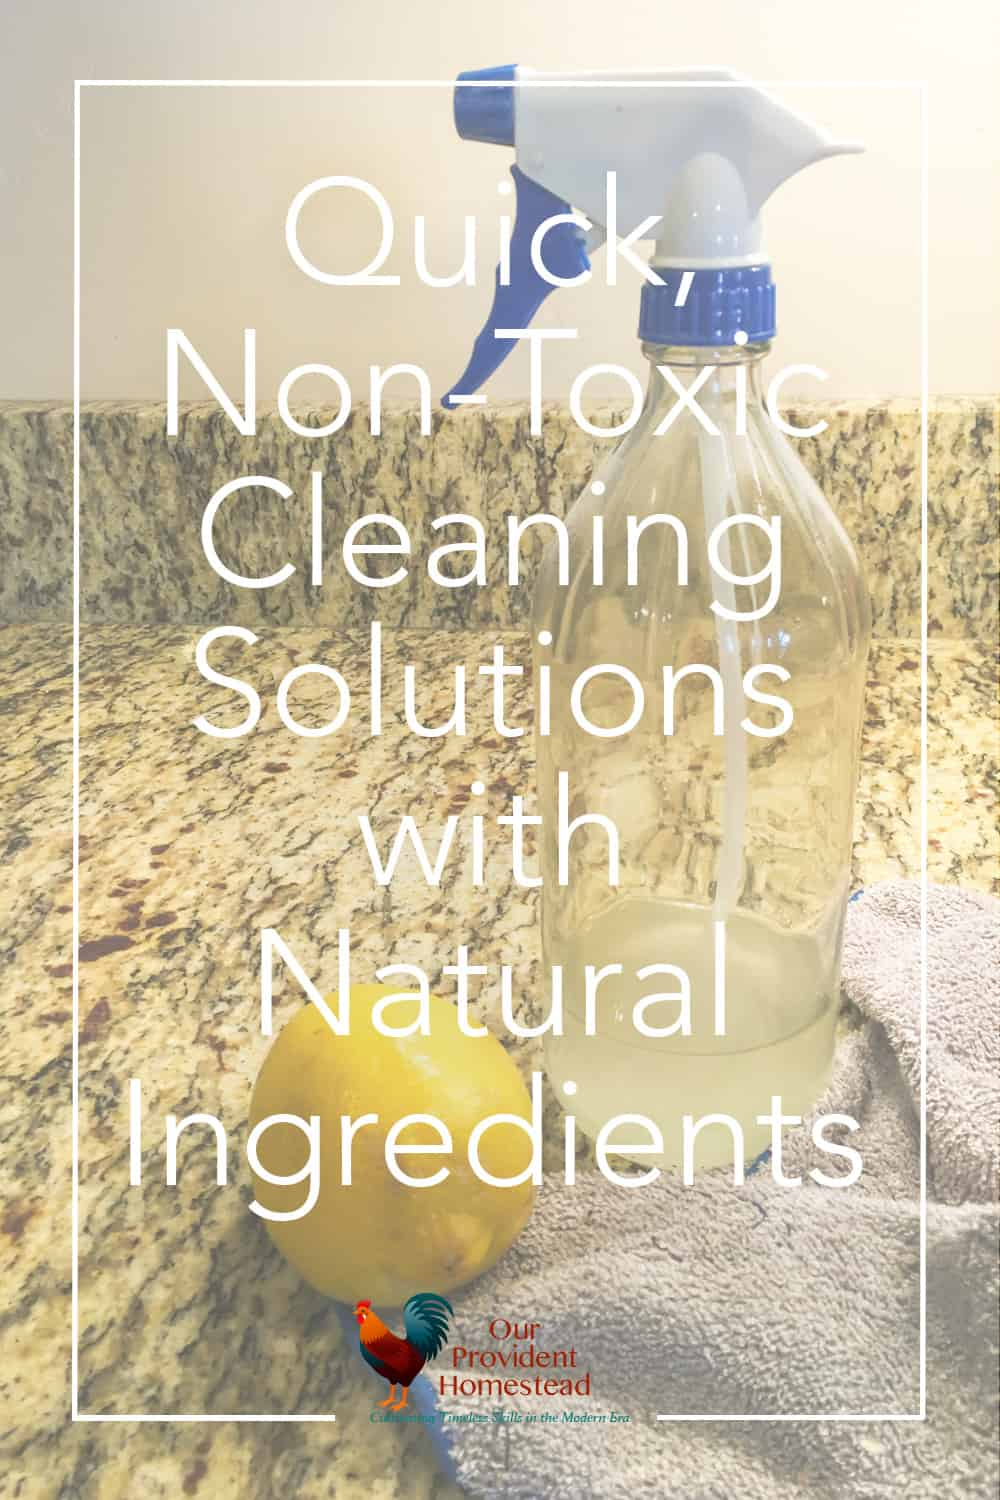 Do you love natural cleaning recipes? We have 10 recipes for natural cleaners plus tips, tricks and a shopping list to make them at home. Natural Cleaning | Homemade Cleaners | Cleaning Hacks